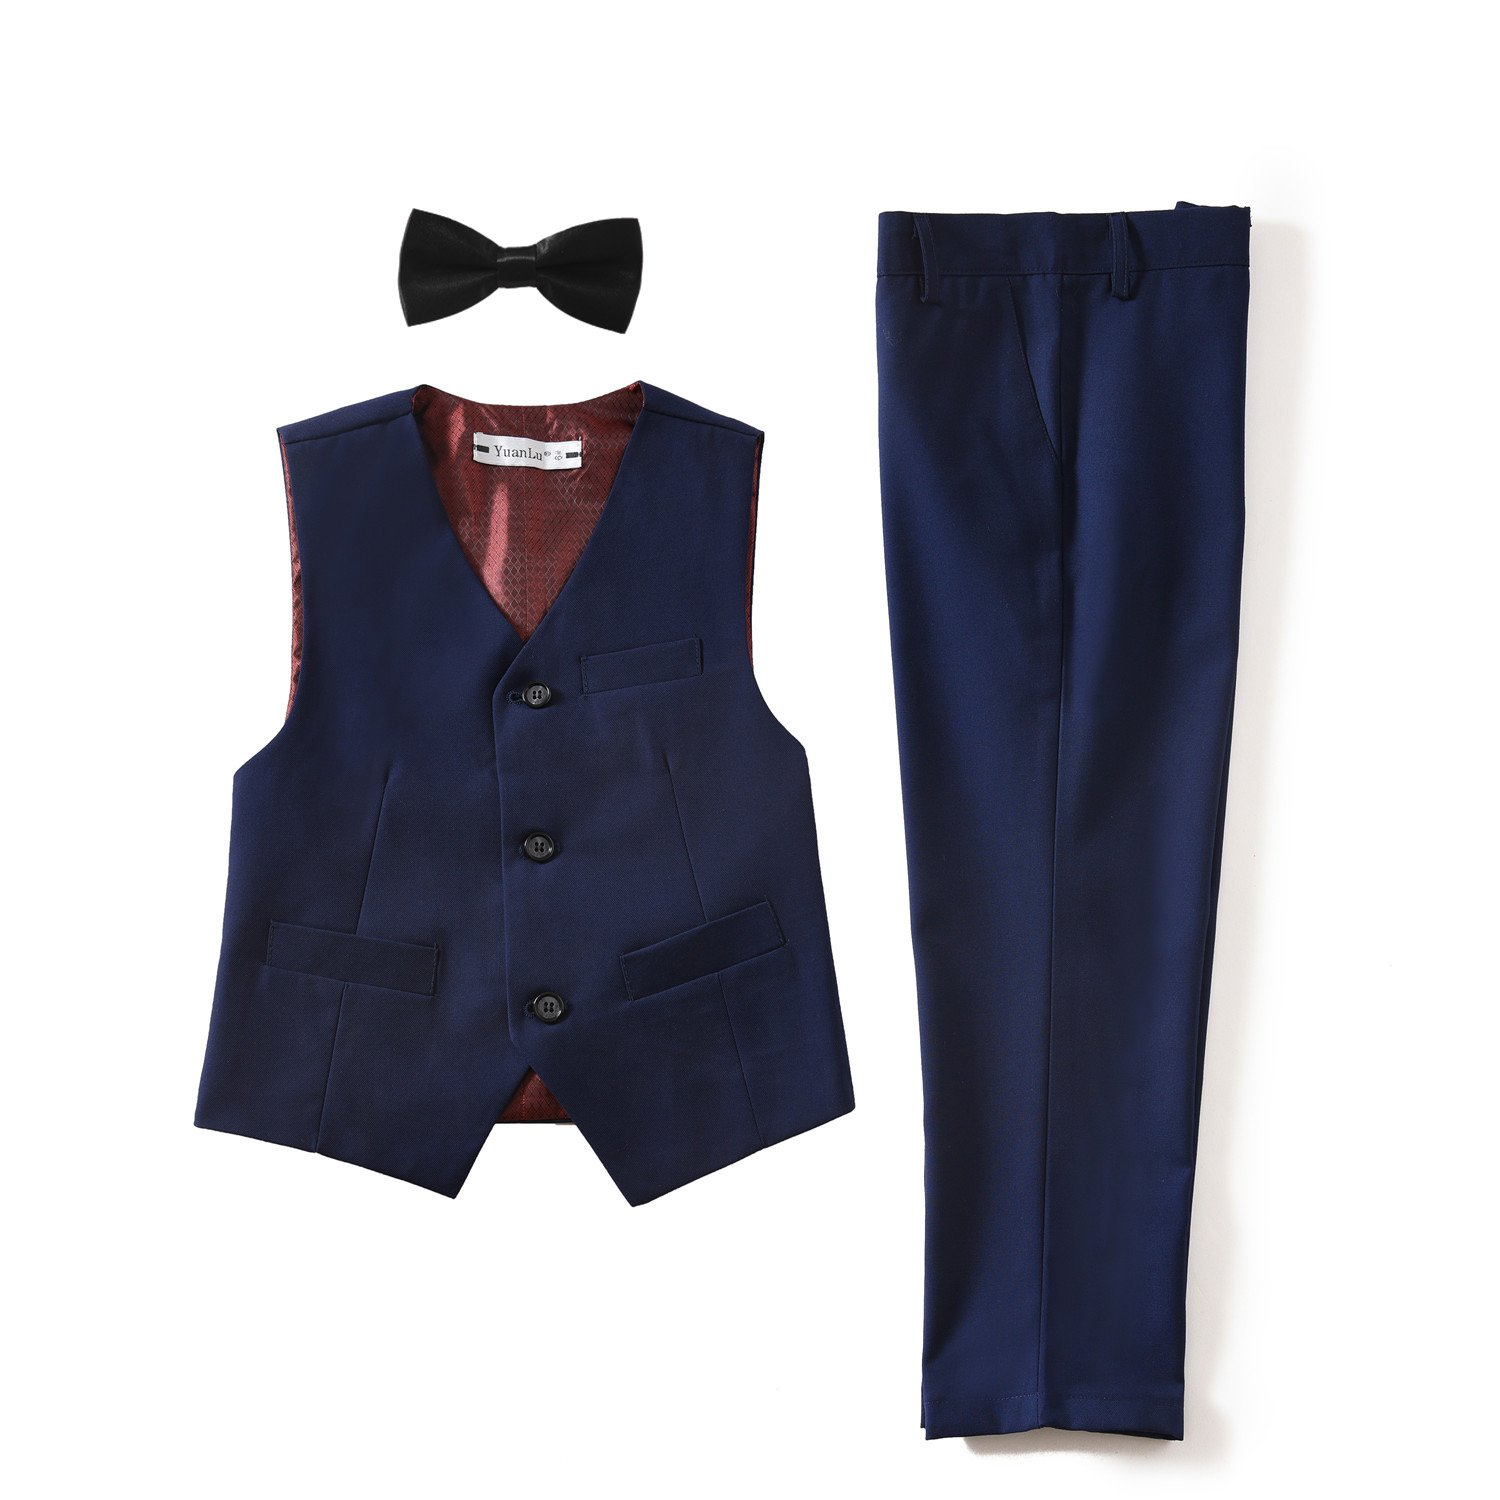 Yuanlu 3 Piece Kids Boys Formal Vest and Pants Set with Bowtie Navy Blue Size 2T